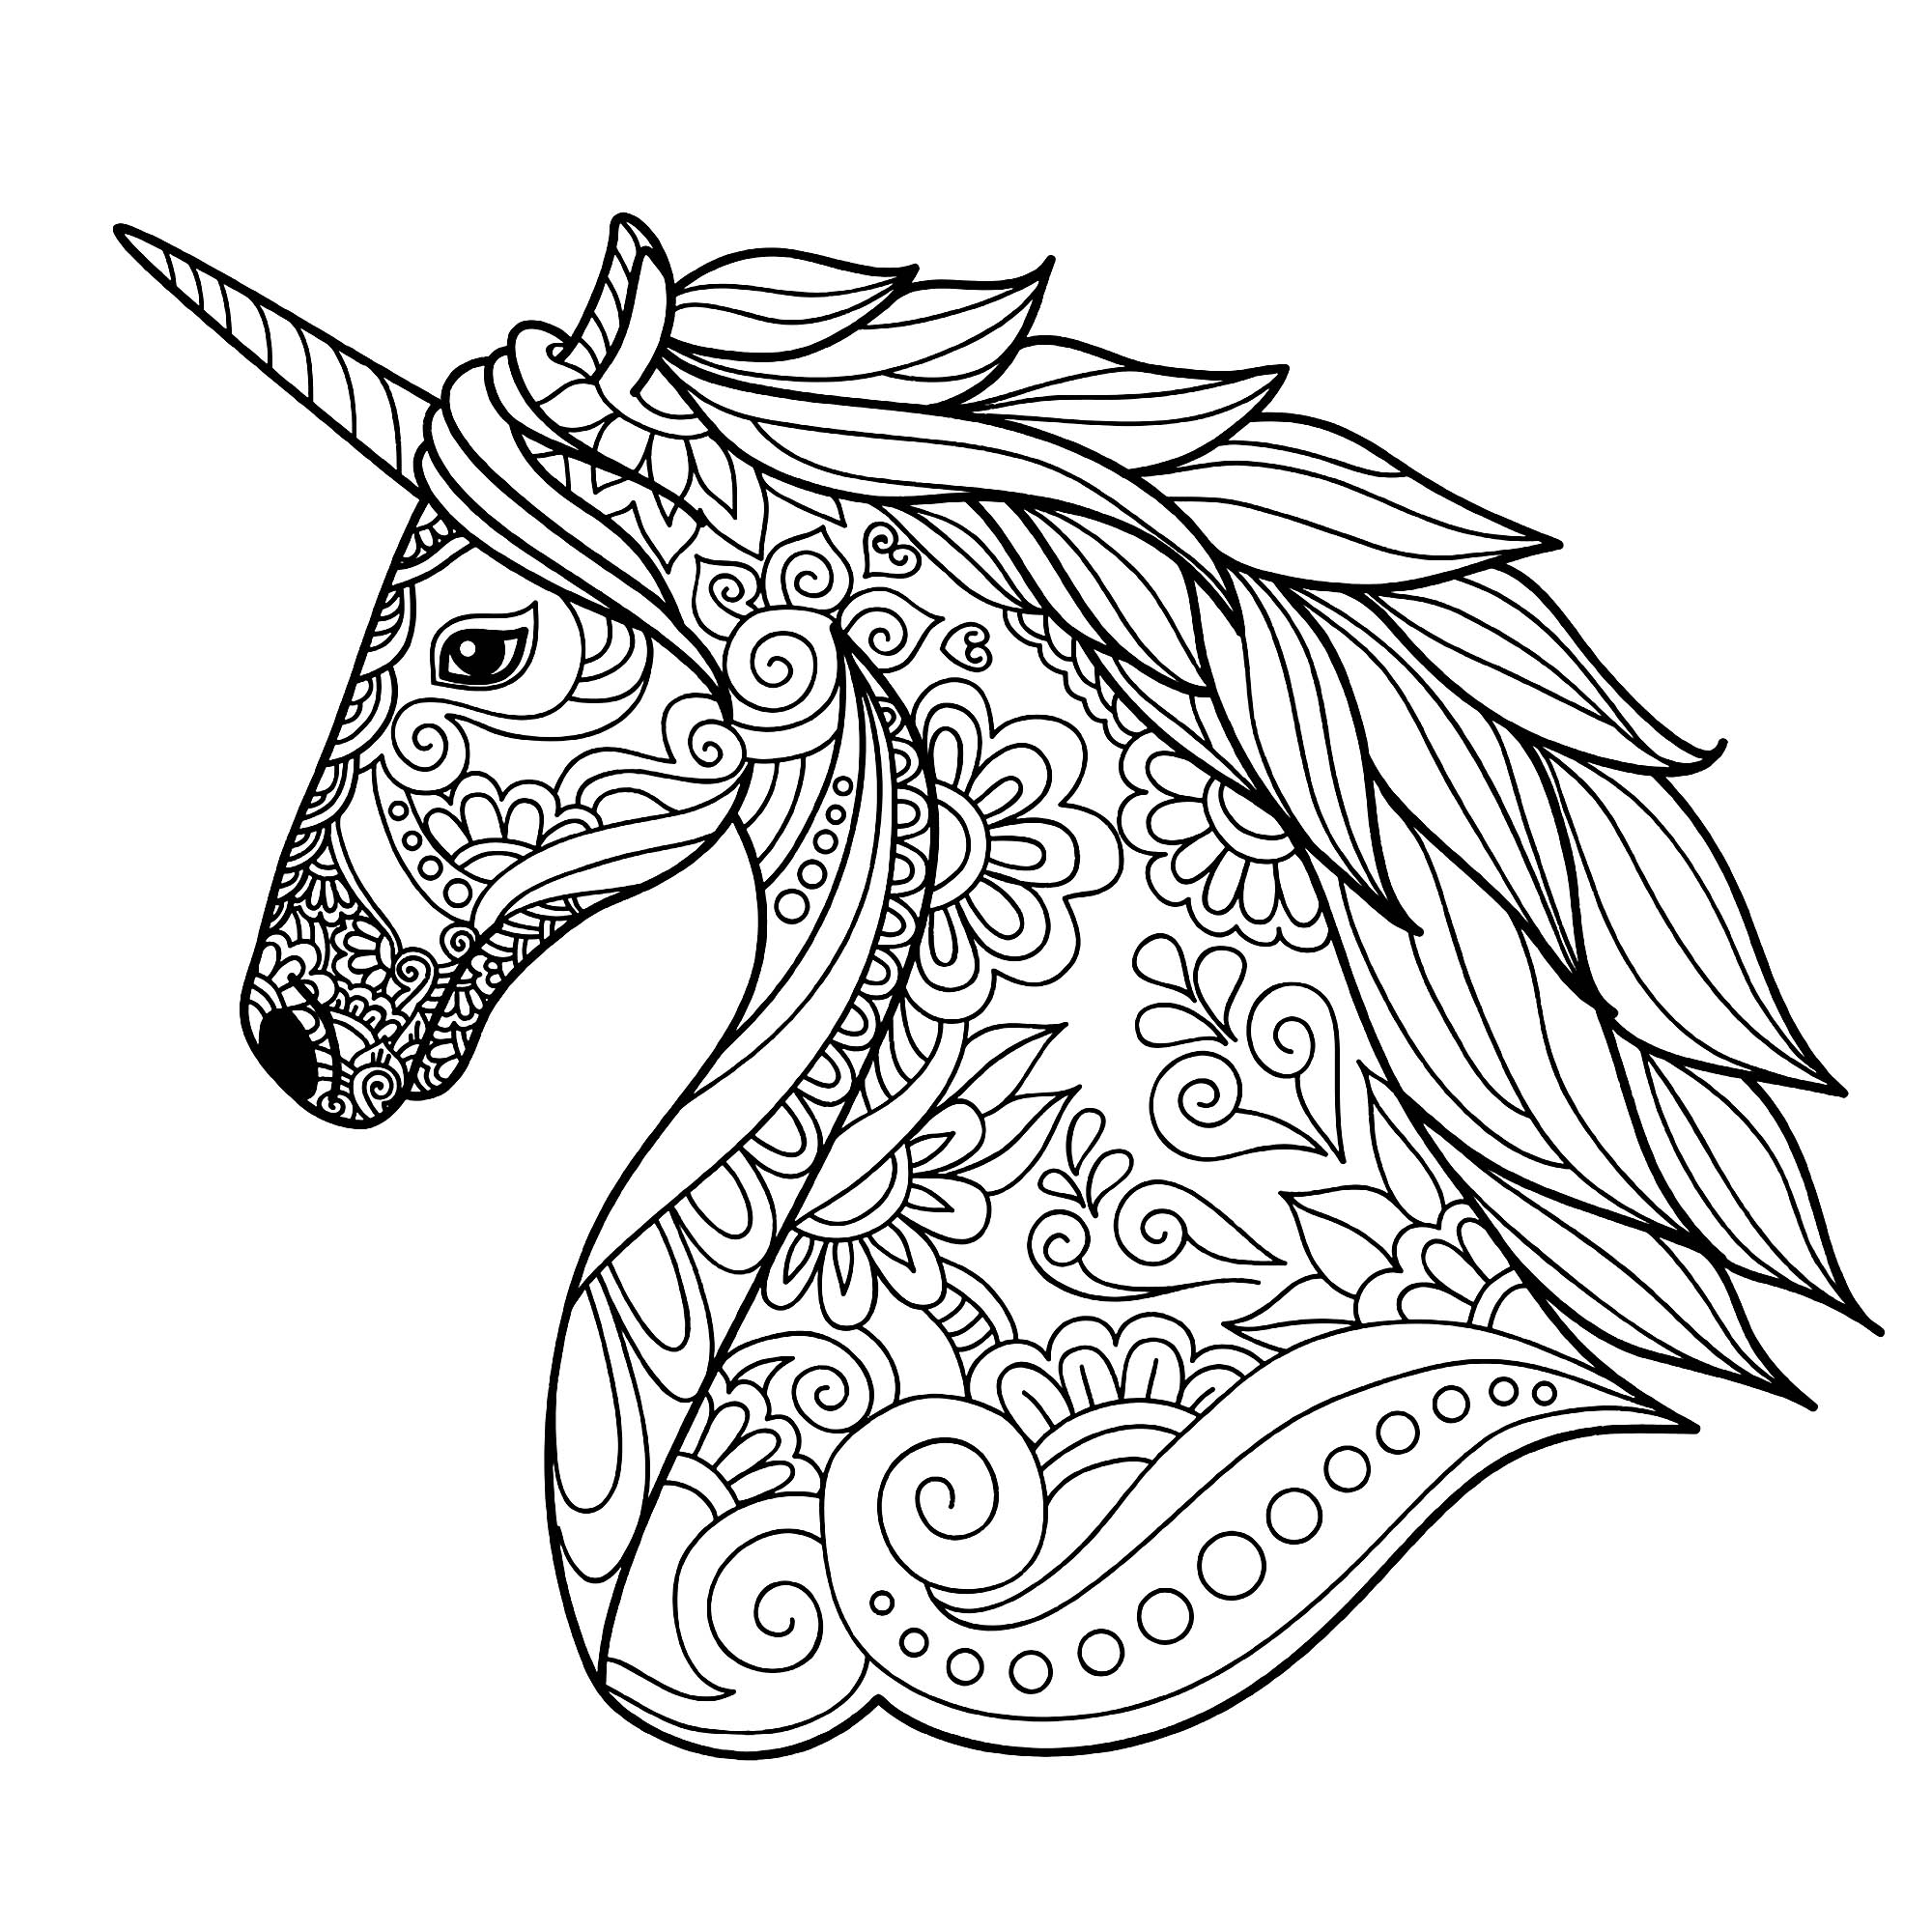 coloring pages for adults unicorn get this free printable unicorn coloring pages for adults for pages unicorn coloring adults